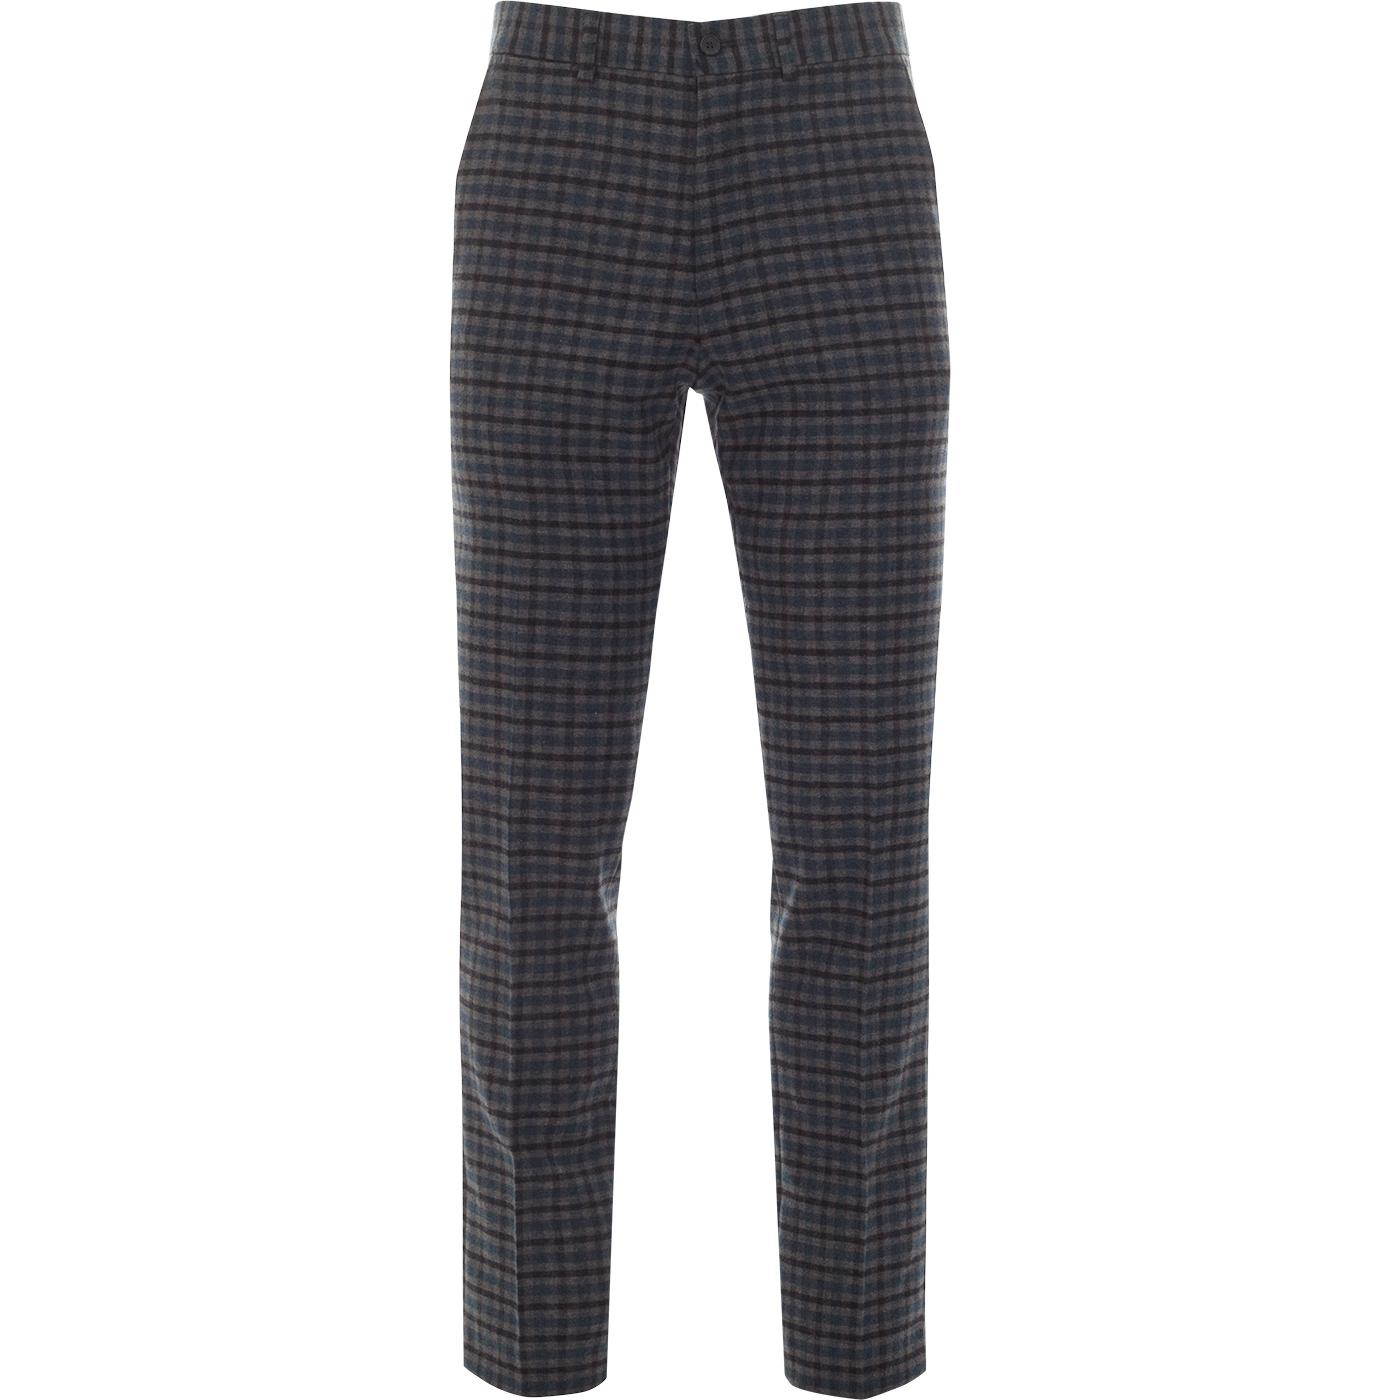 GIBSON LONDON 60s Mod Gingham Check Trousers GREY